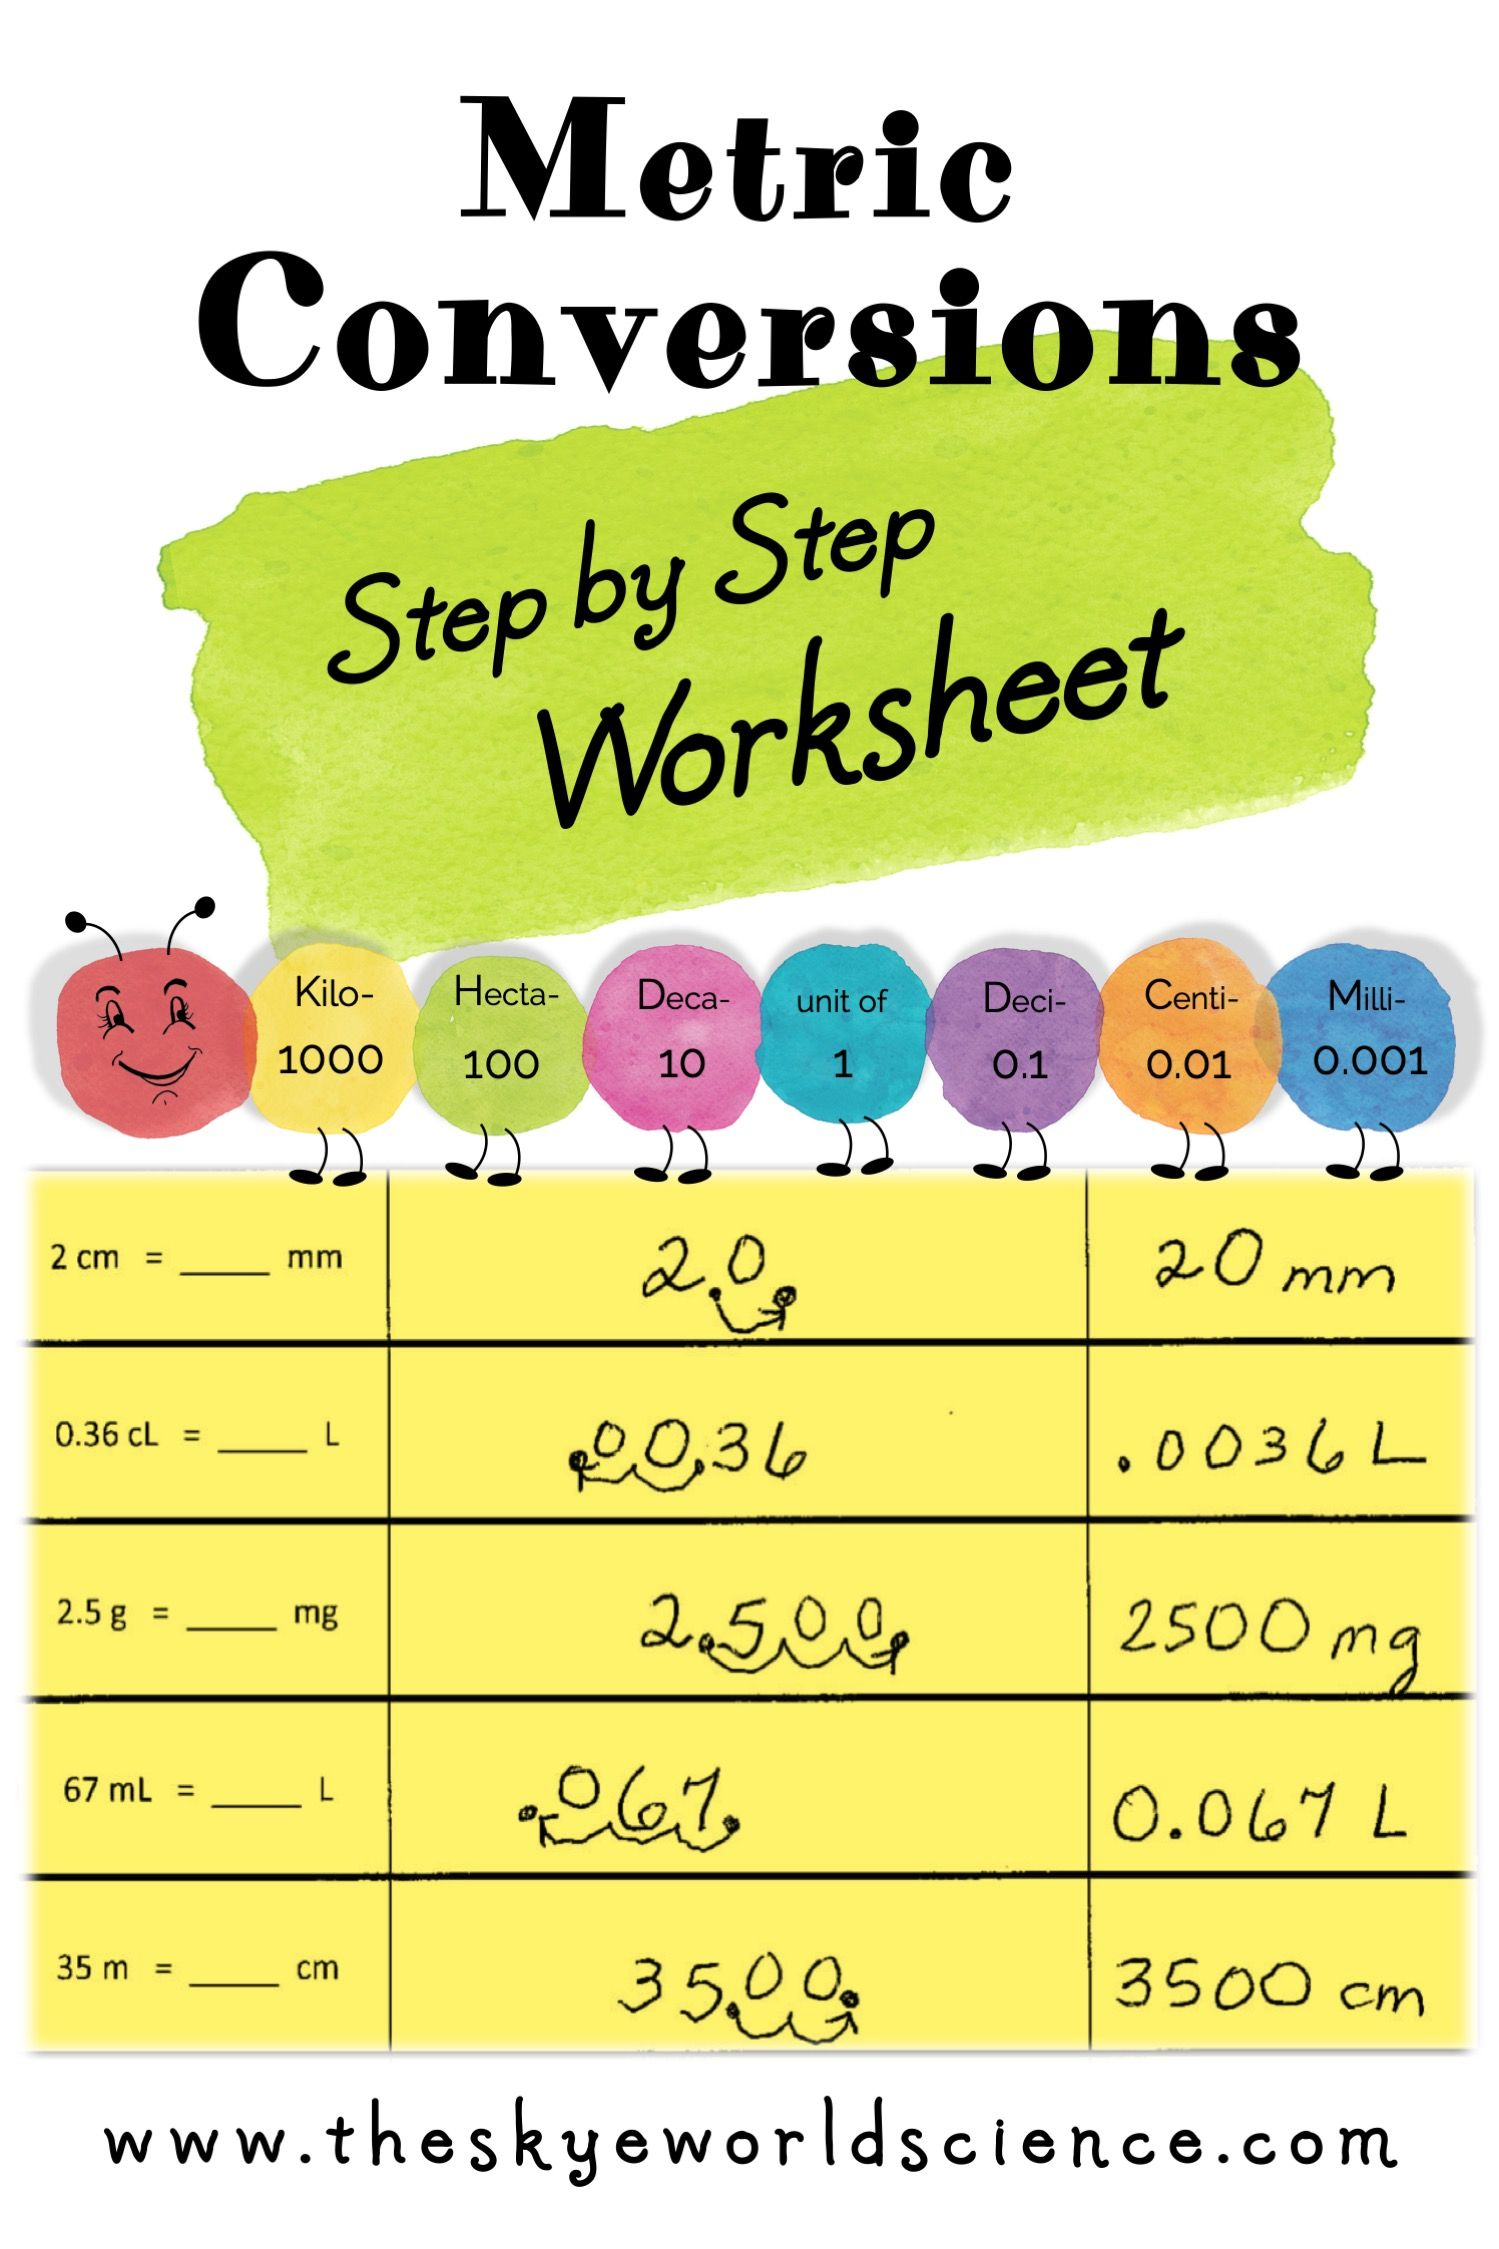 Metric Conversions And Measurements Worksheet In